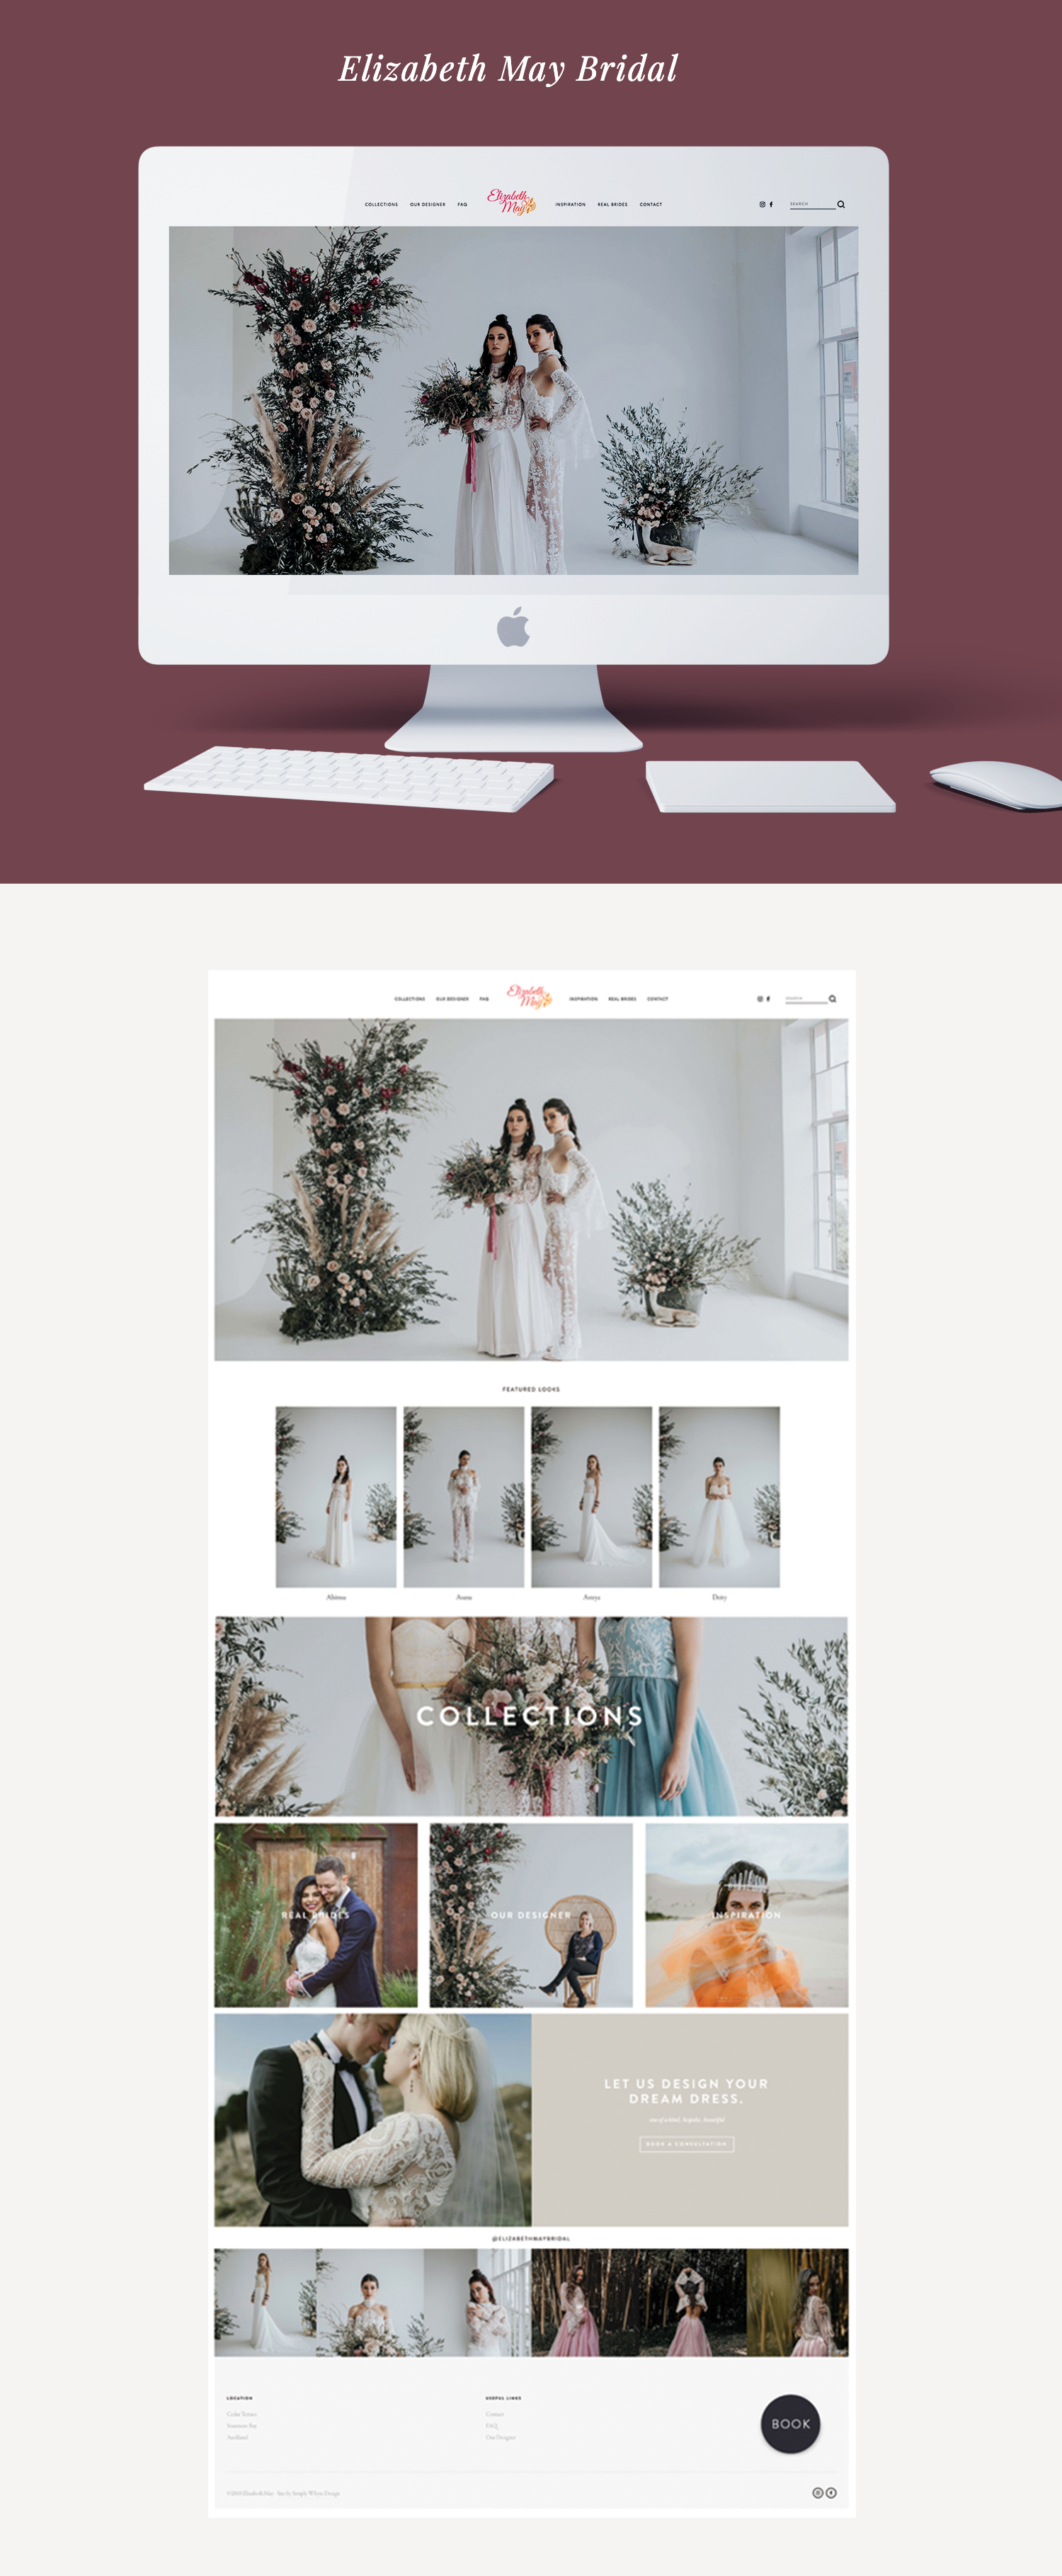 elizabeth may bridal simply whyte design squarespace design